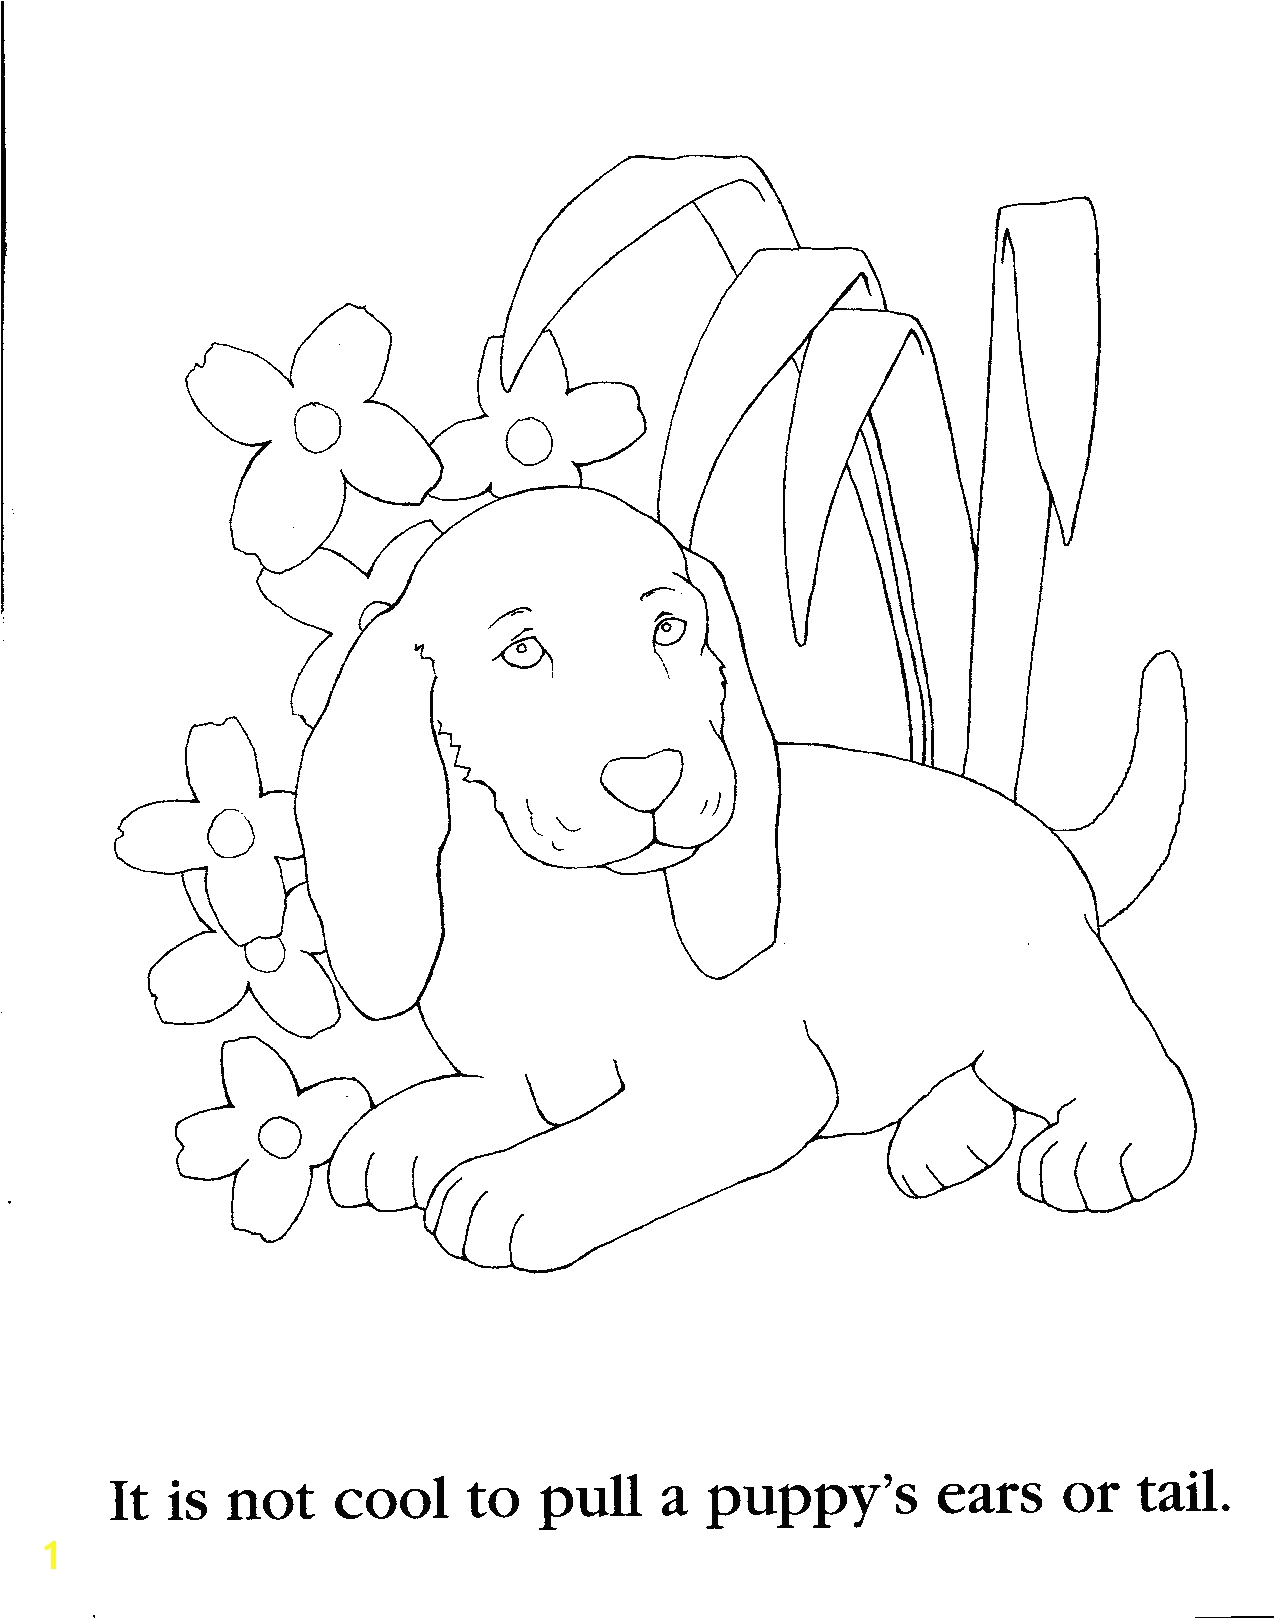 Coloring Pages for Kids 9 Years Old Coloring Pages for 9 Year Olds